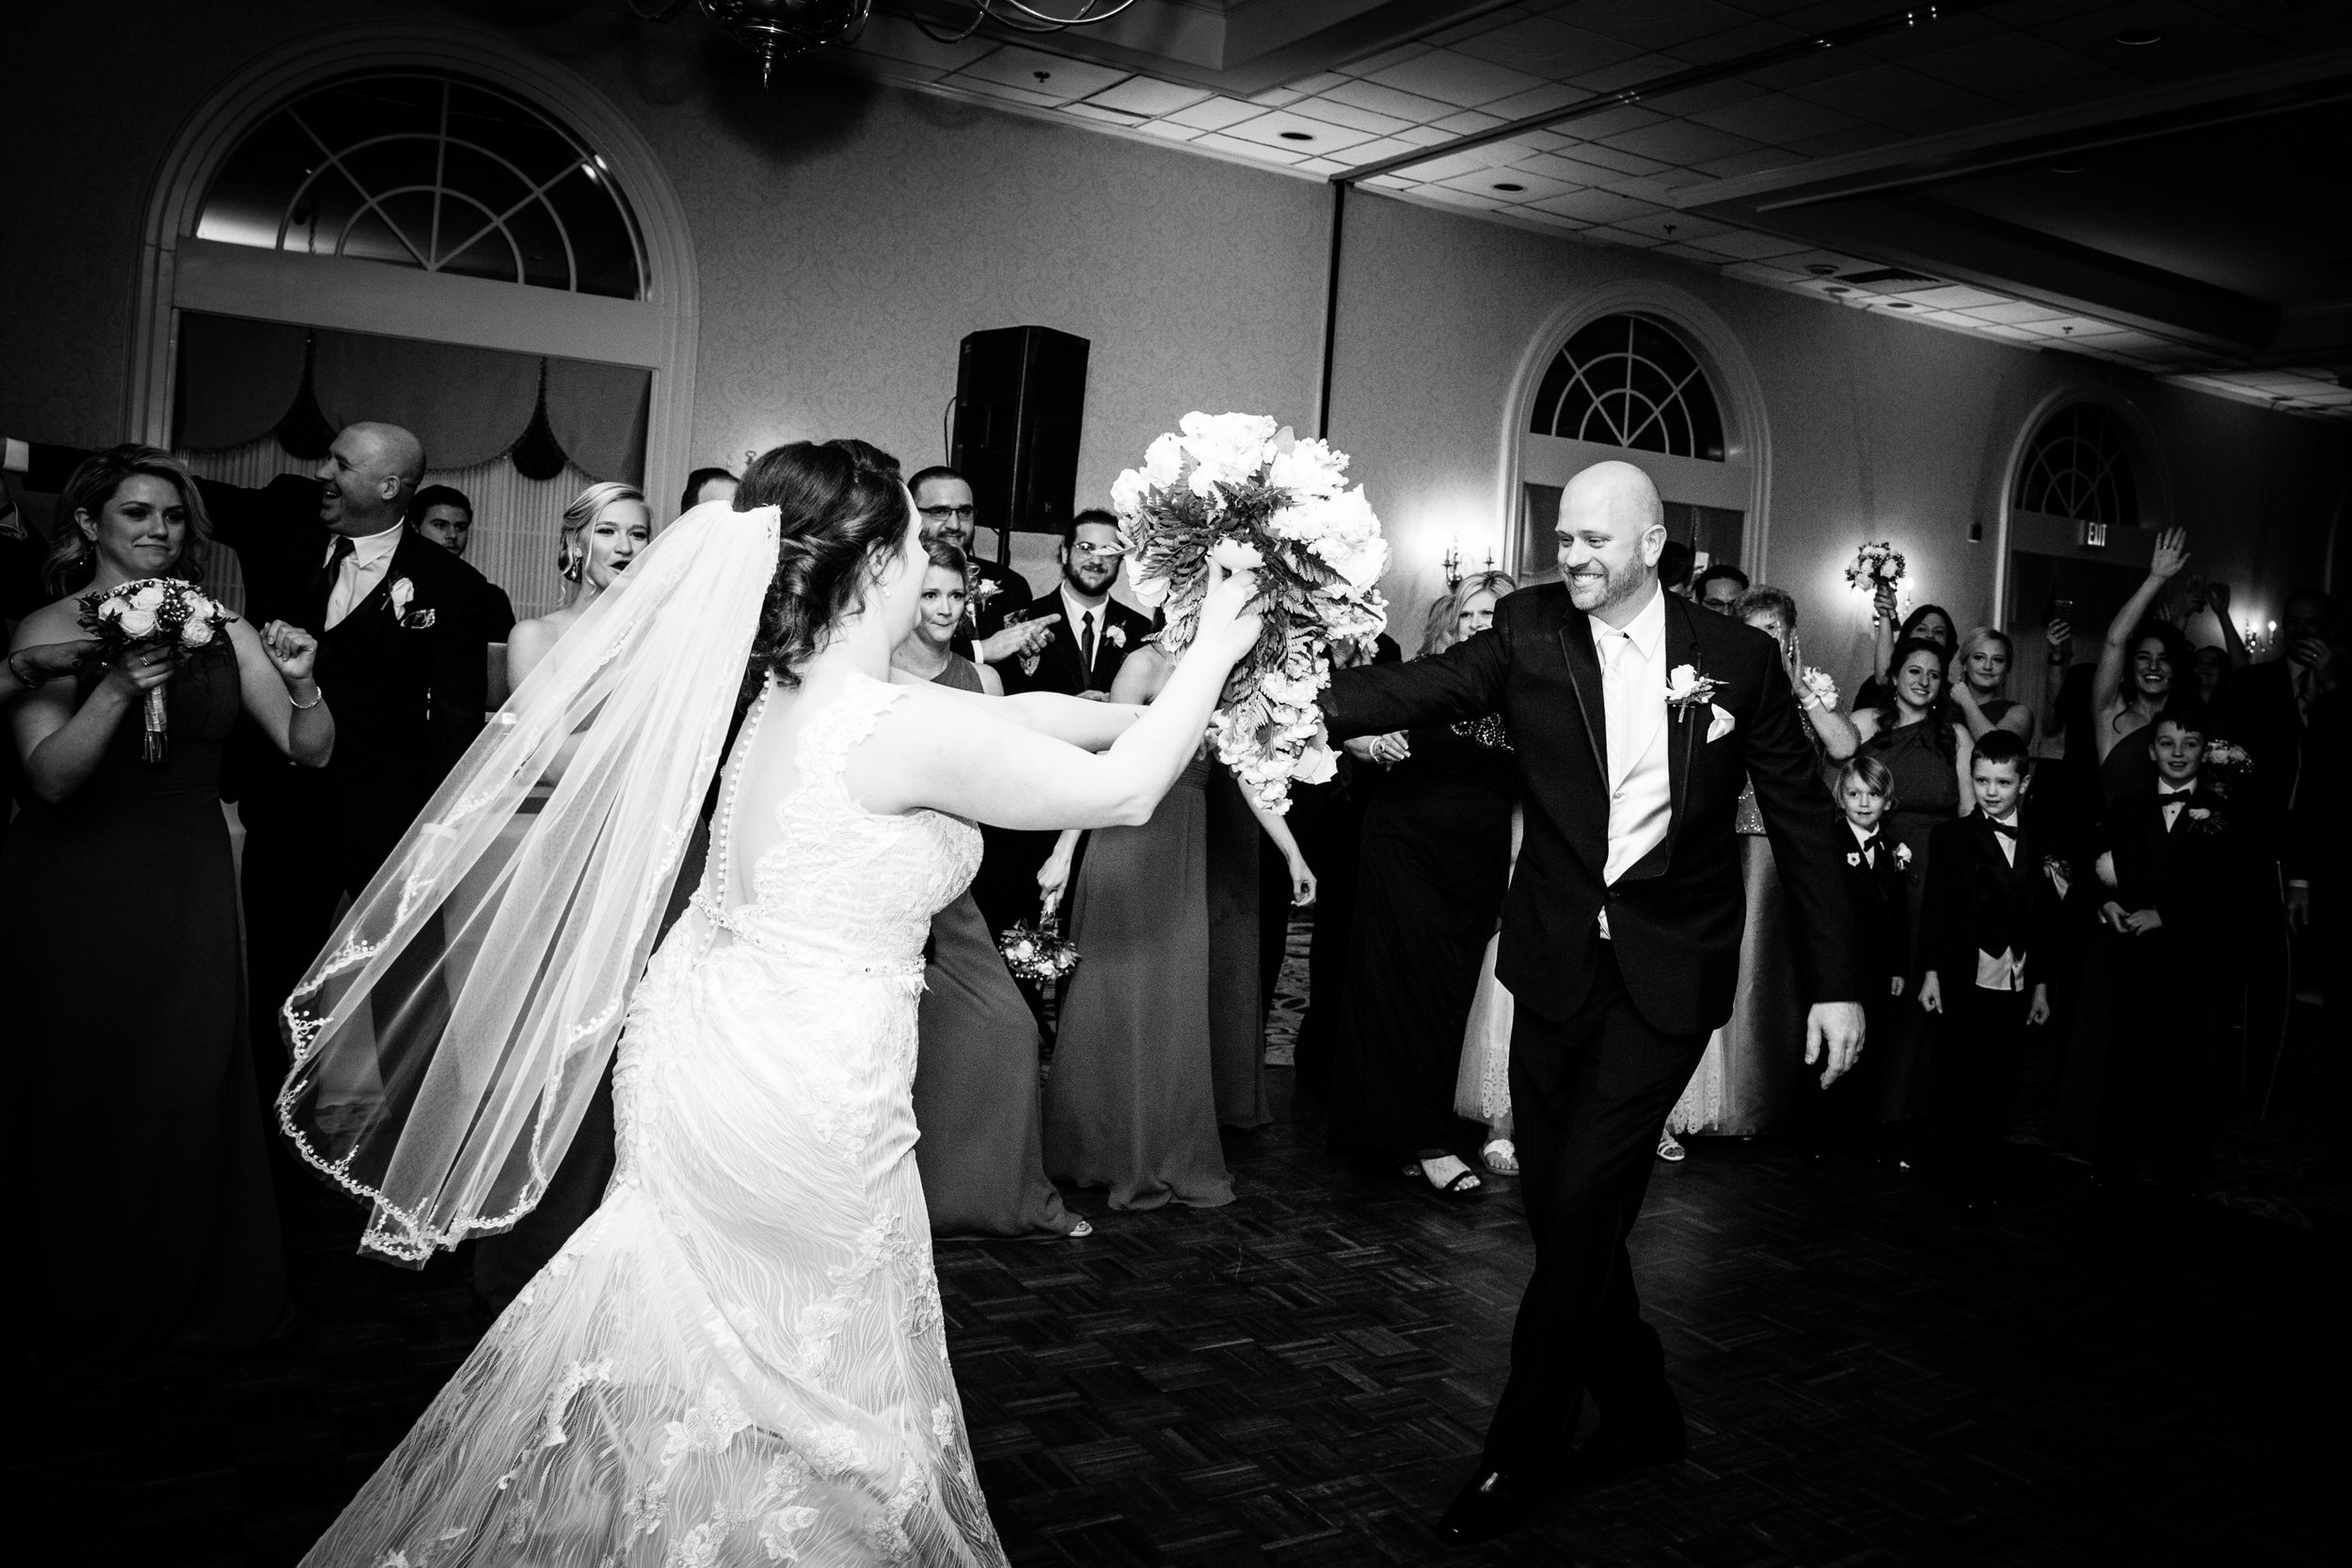 STEPHANIE AND TODDS WEDDING - SPRING MILL MANOR - IVYLAND PA WEDDING - 091.jpg